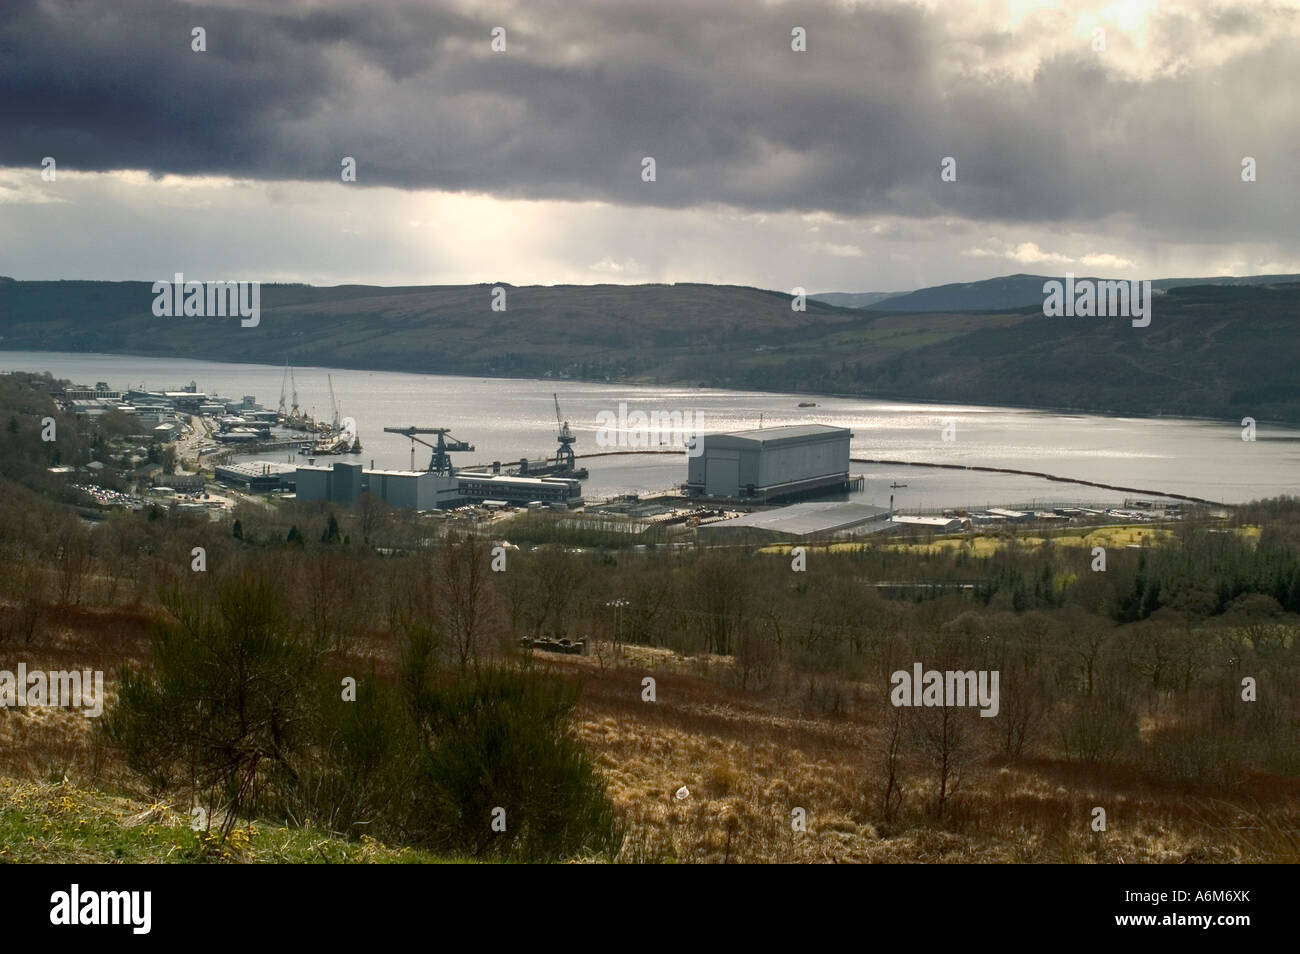 Home of the Royal Navy nuclear submarine fleet - Stock Image